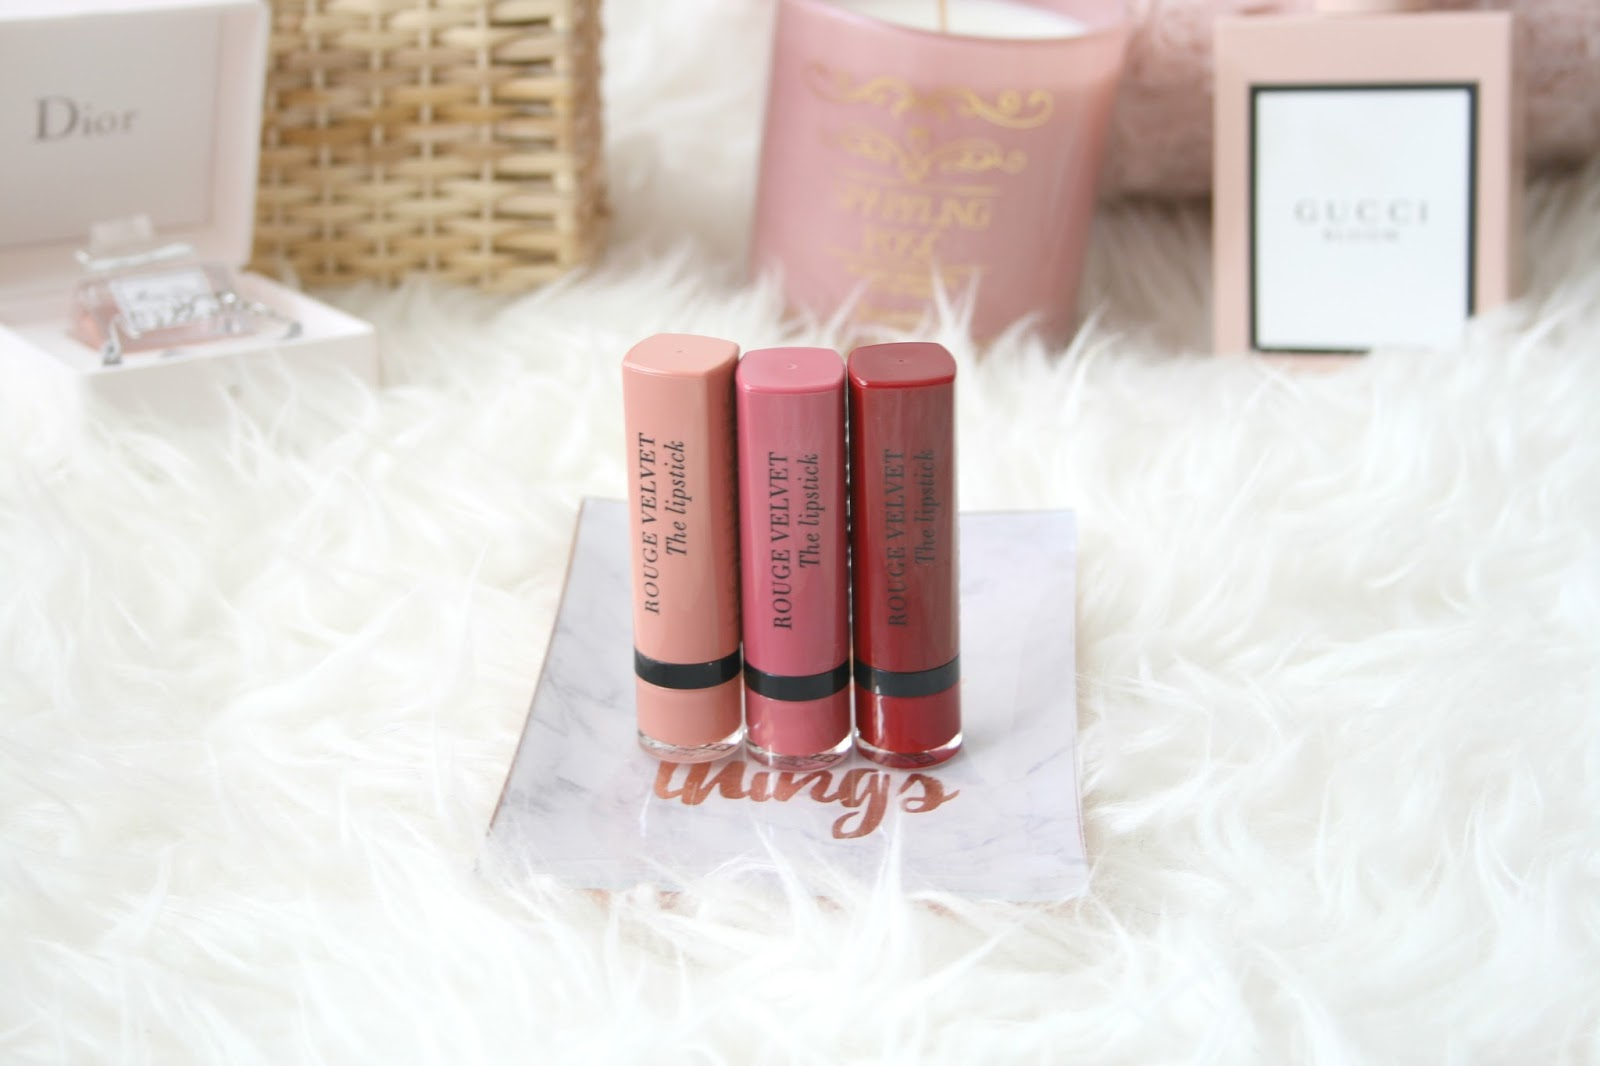 Bourjois Rouge Velvet Lipsticks